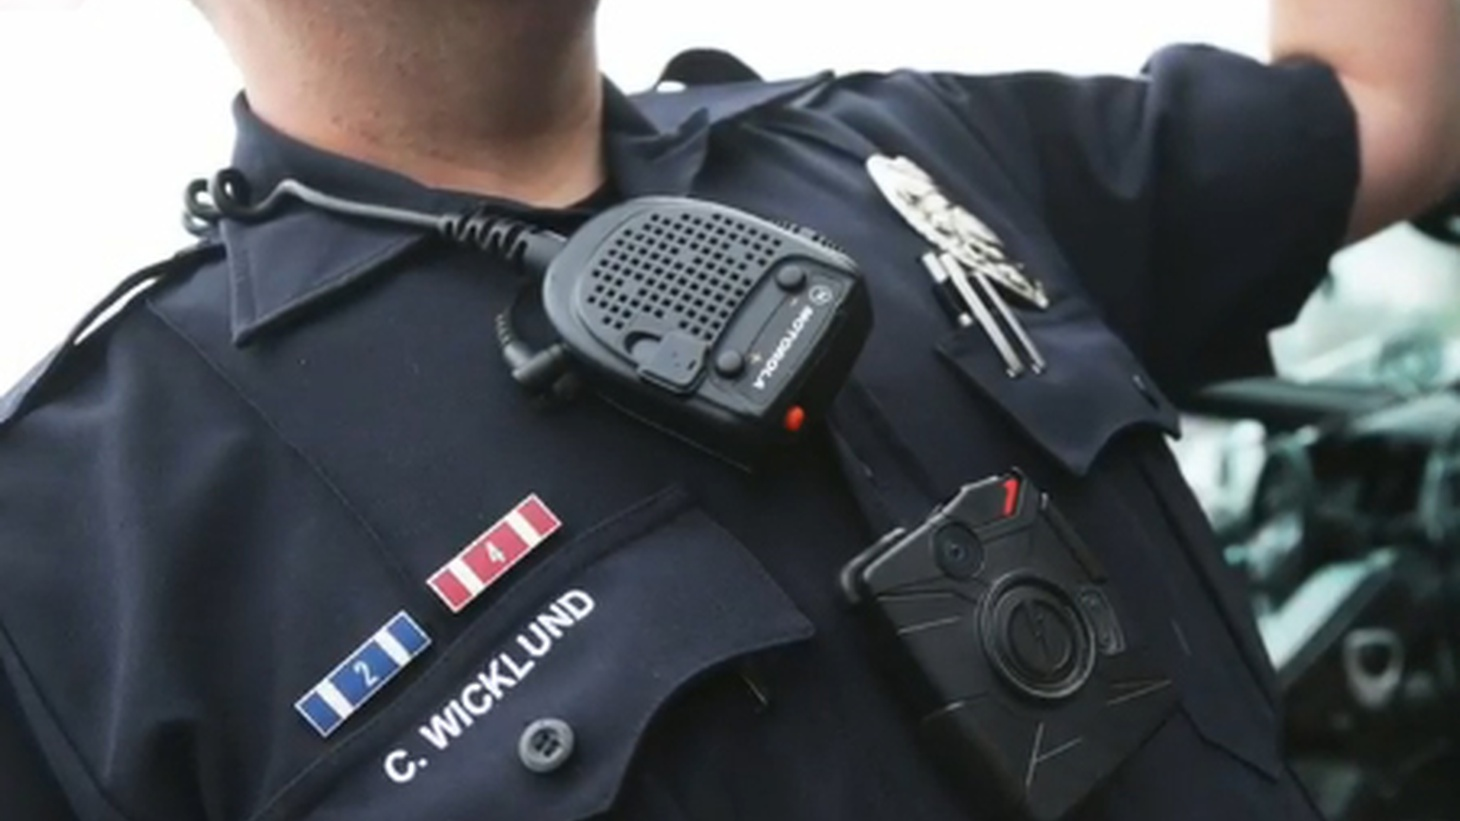 When police departments around the country have mandated body cameras, both uses of force by officers and public complaints have often dropped dramatically. Starting Monday, the LAPD will issue 860 body cams — the first of a planned 7000.  But, even though the Police Commission, the police department and the police union agree they're a good idea, many questions remain.